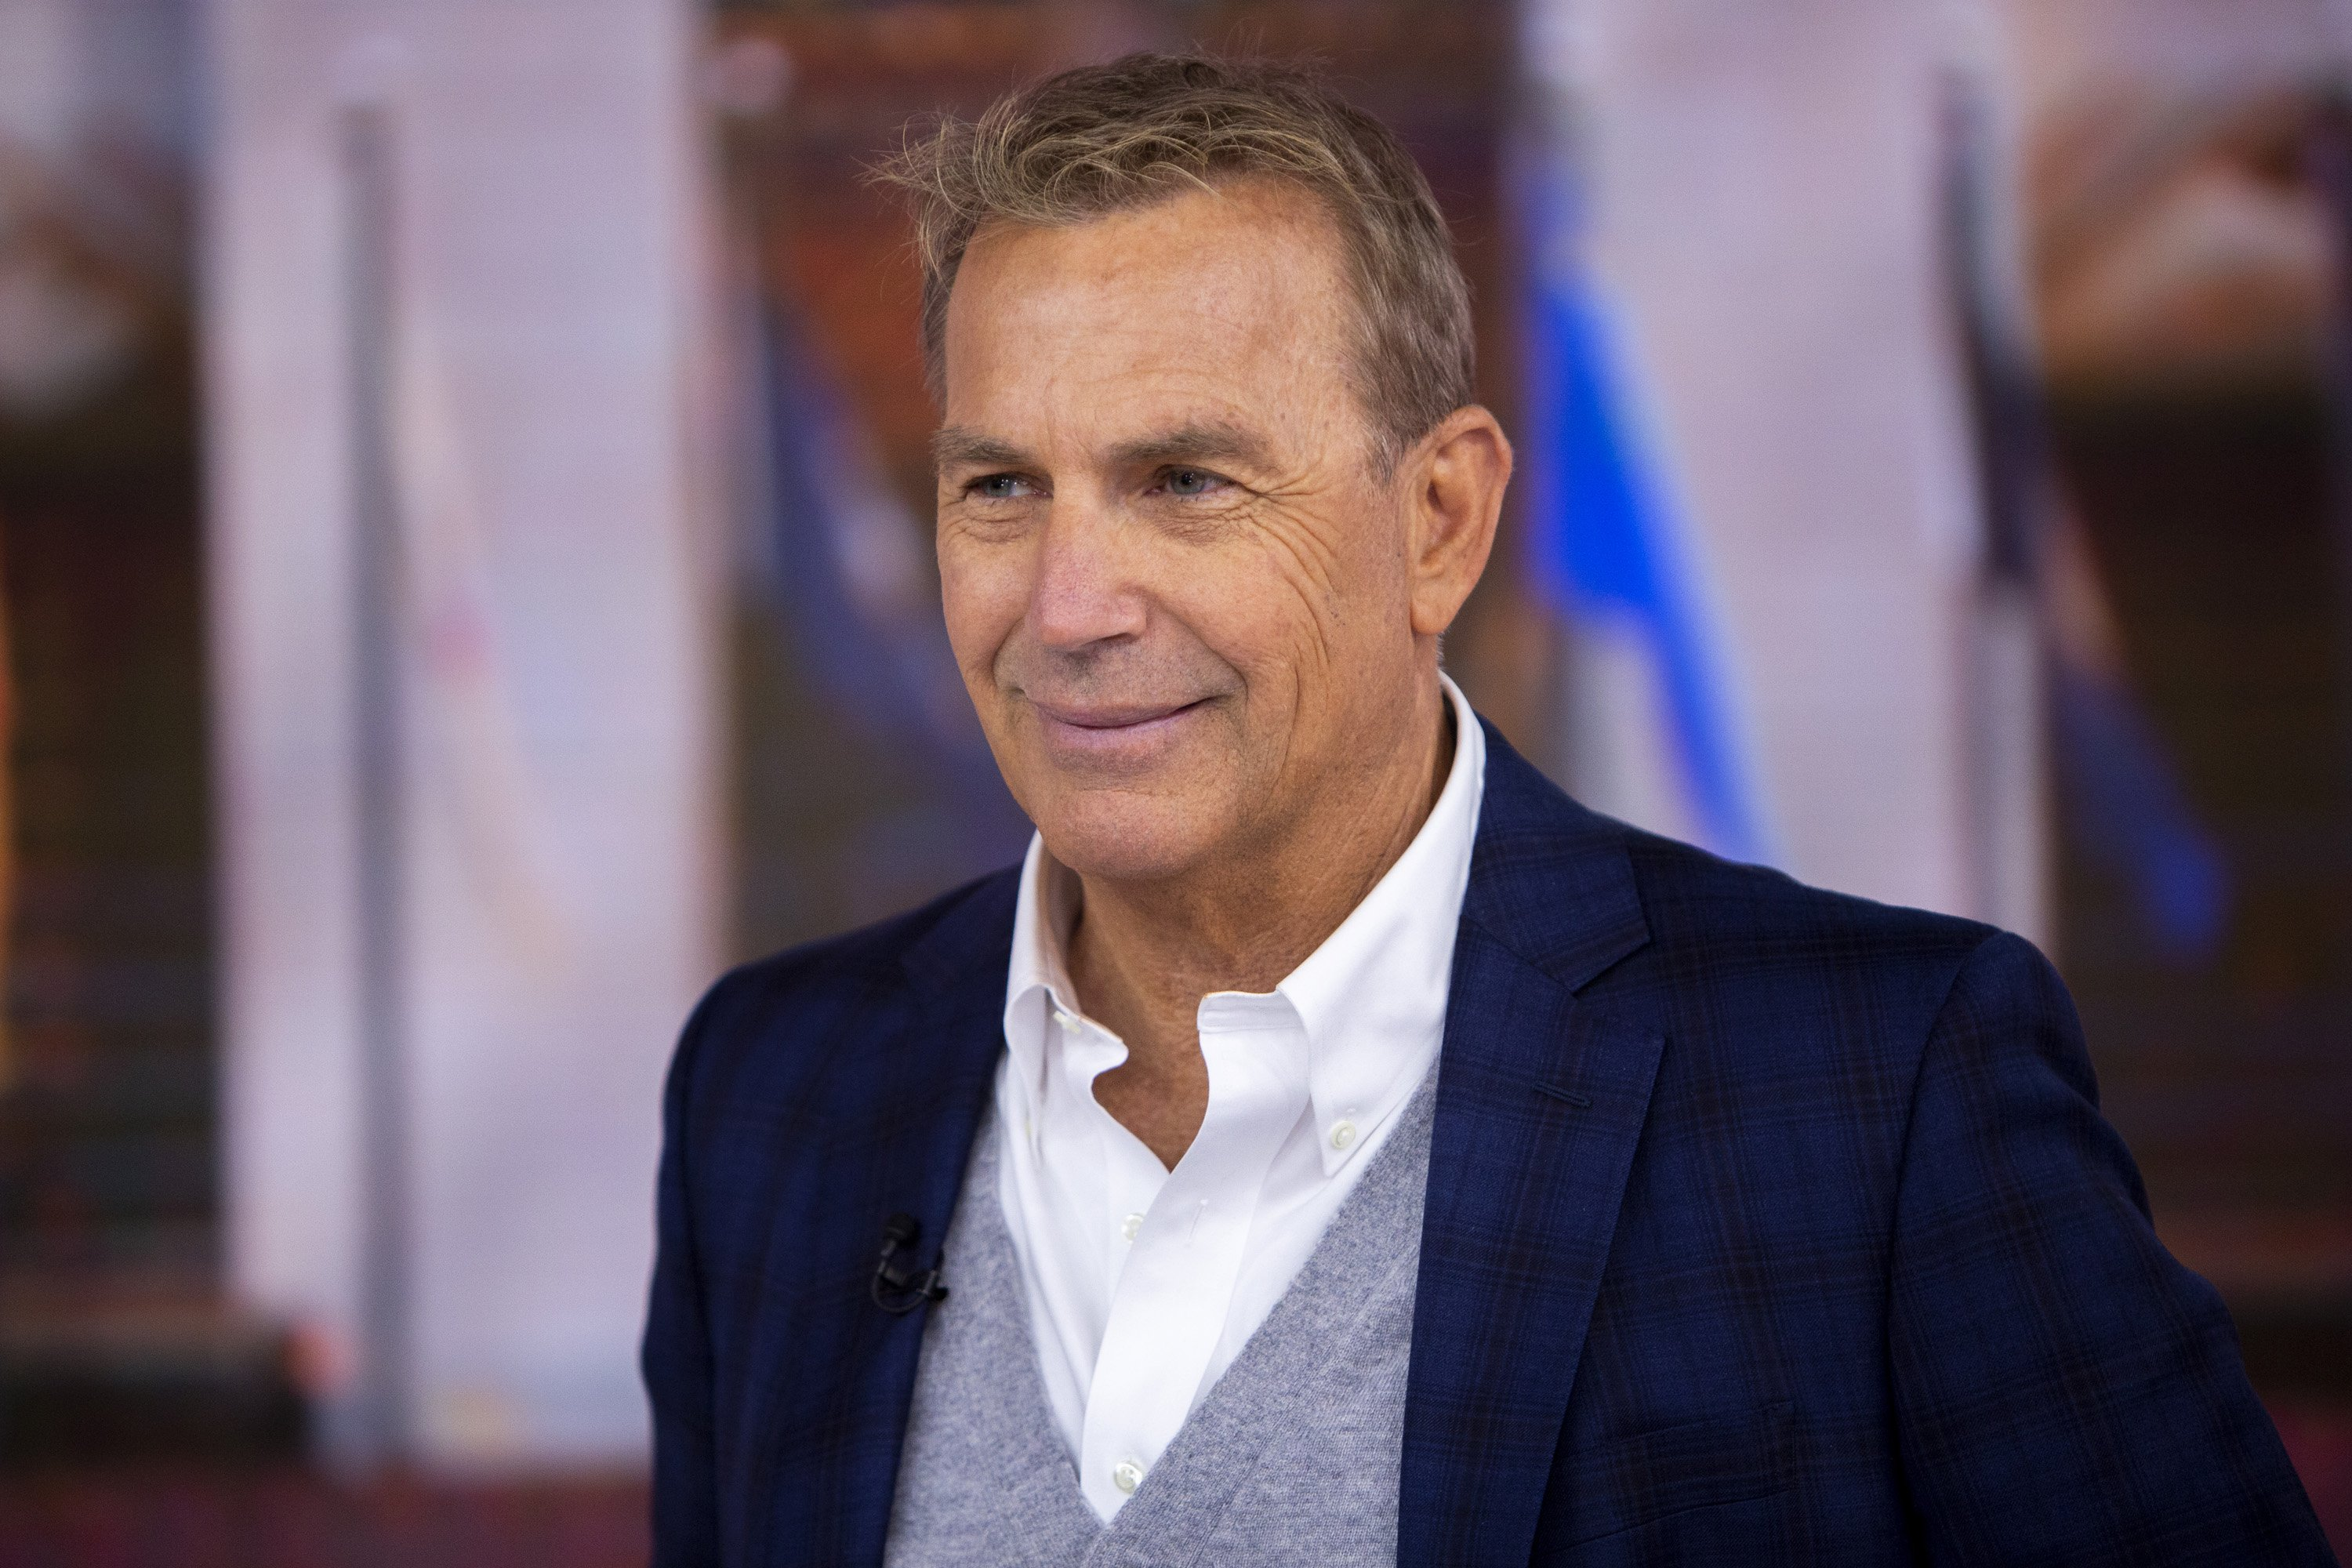 Kevin Costner pictured on Thursday, March 28, 2019. | Source: Getty Images.